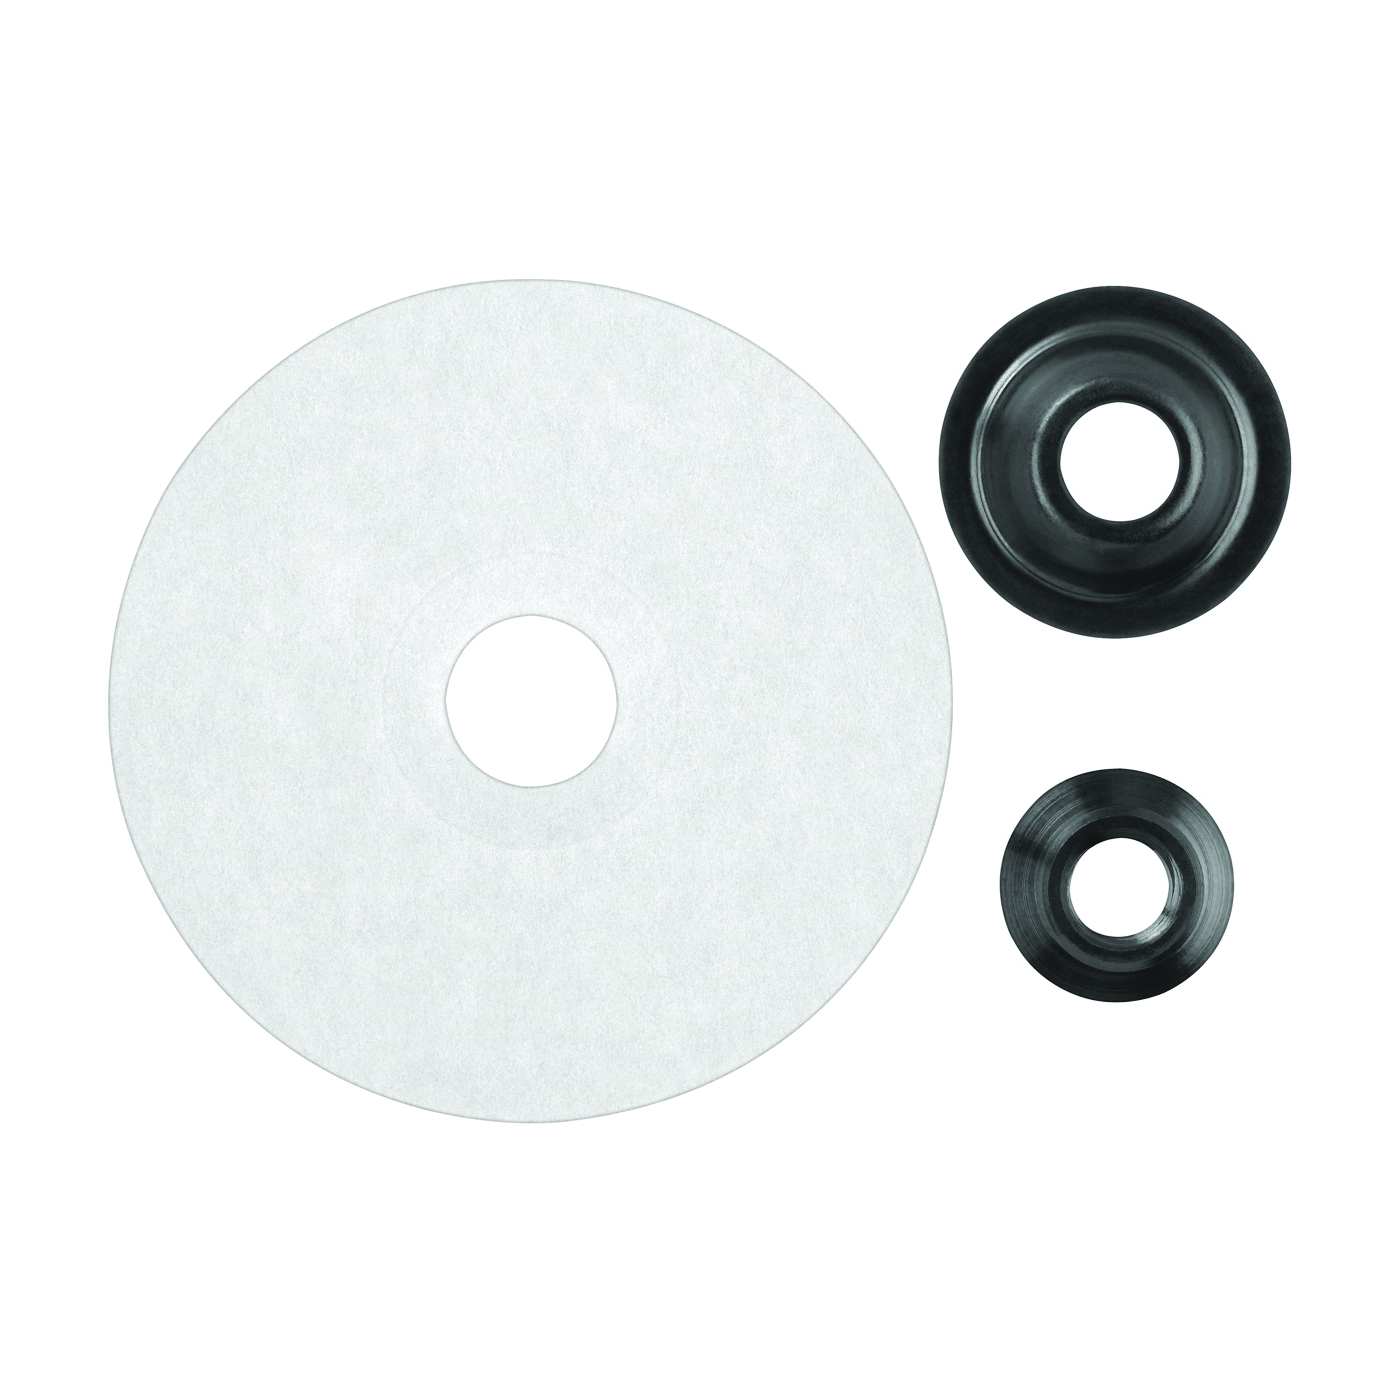 Picture of DeWALT DW4942 Fiber Disc Backing Pad with Clamp Nut, 4-1/2 in Dia, 5/8 in Arbor/Shank, Paper